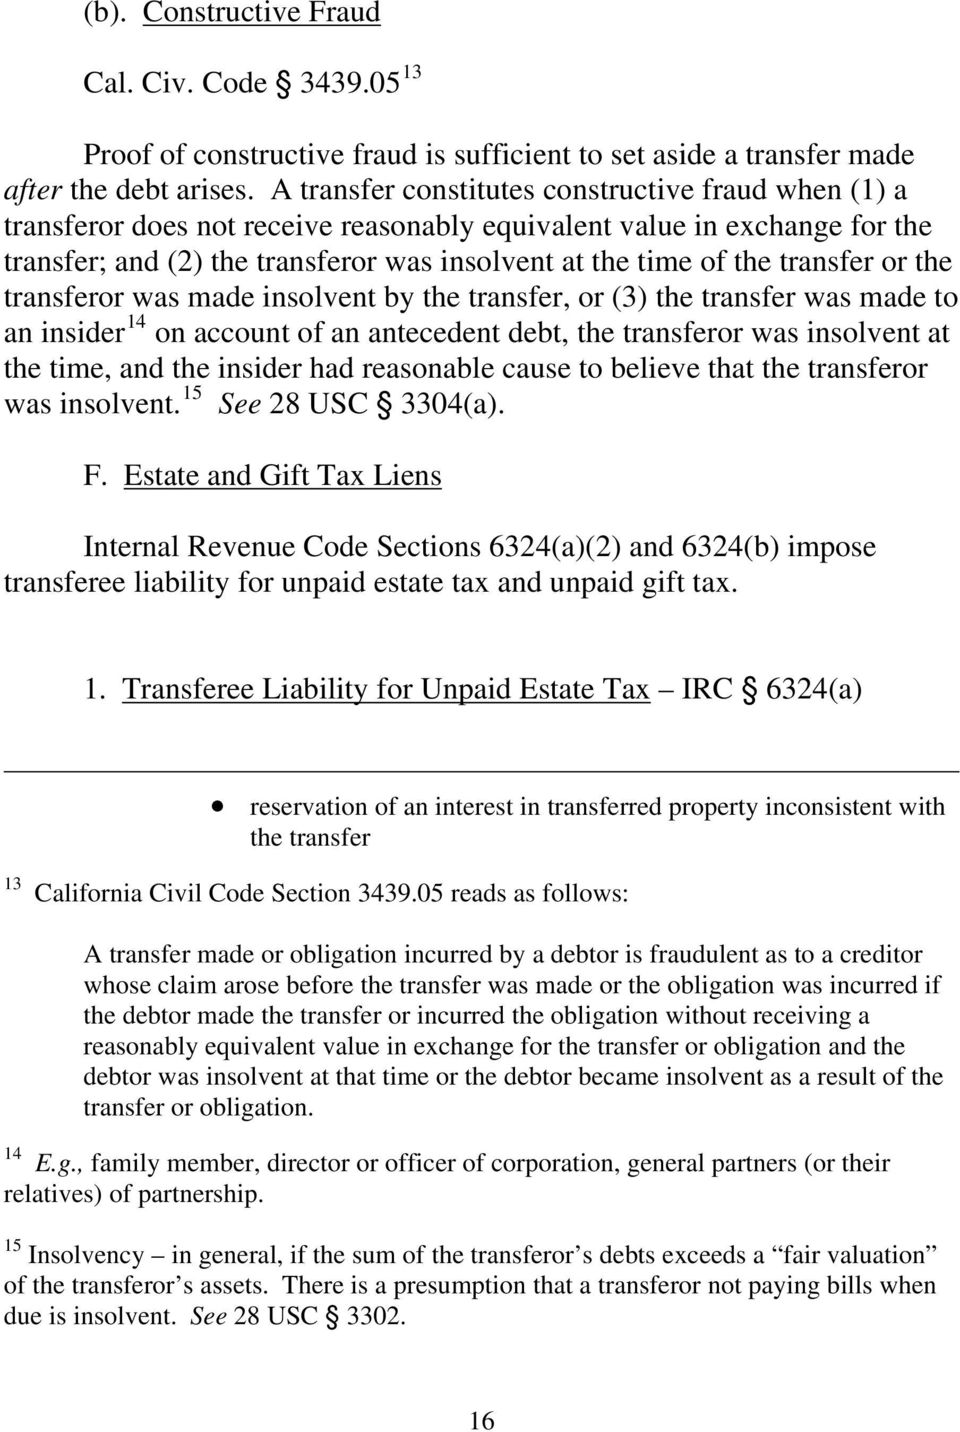 transfer or the transferor was made insolvent by the transfer, or (3) the transfer was made to an insider 14 on account of an antecedent debt, the transferor was insolvent at the time, and the